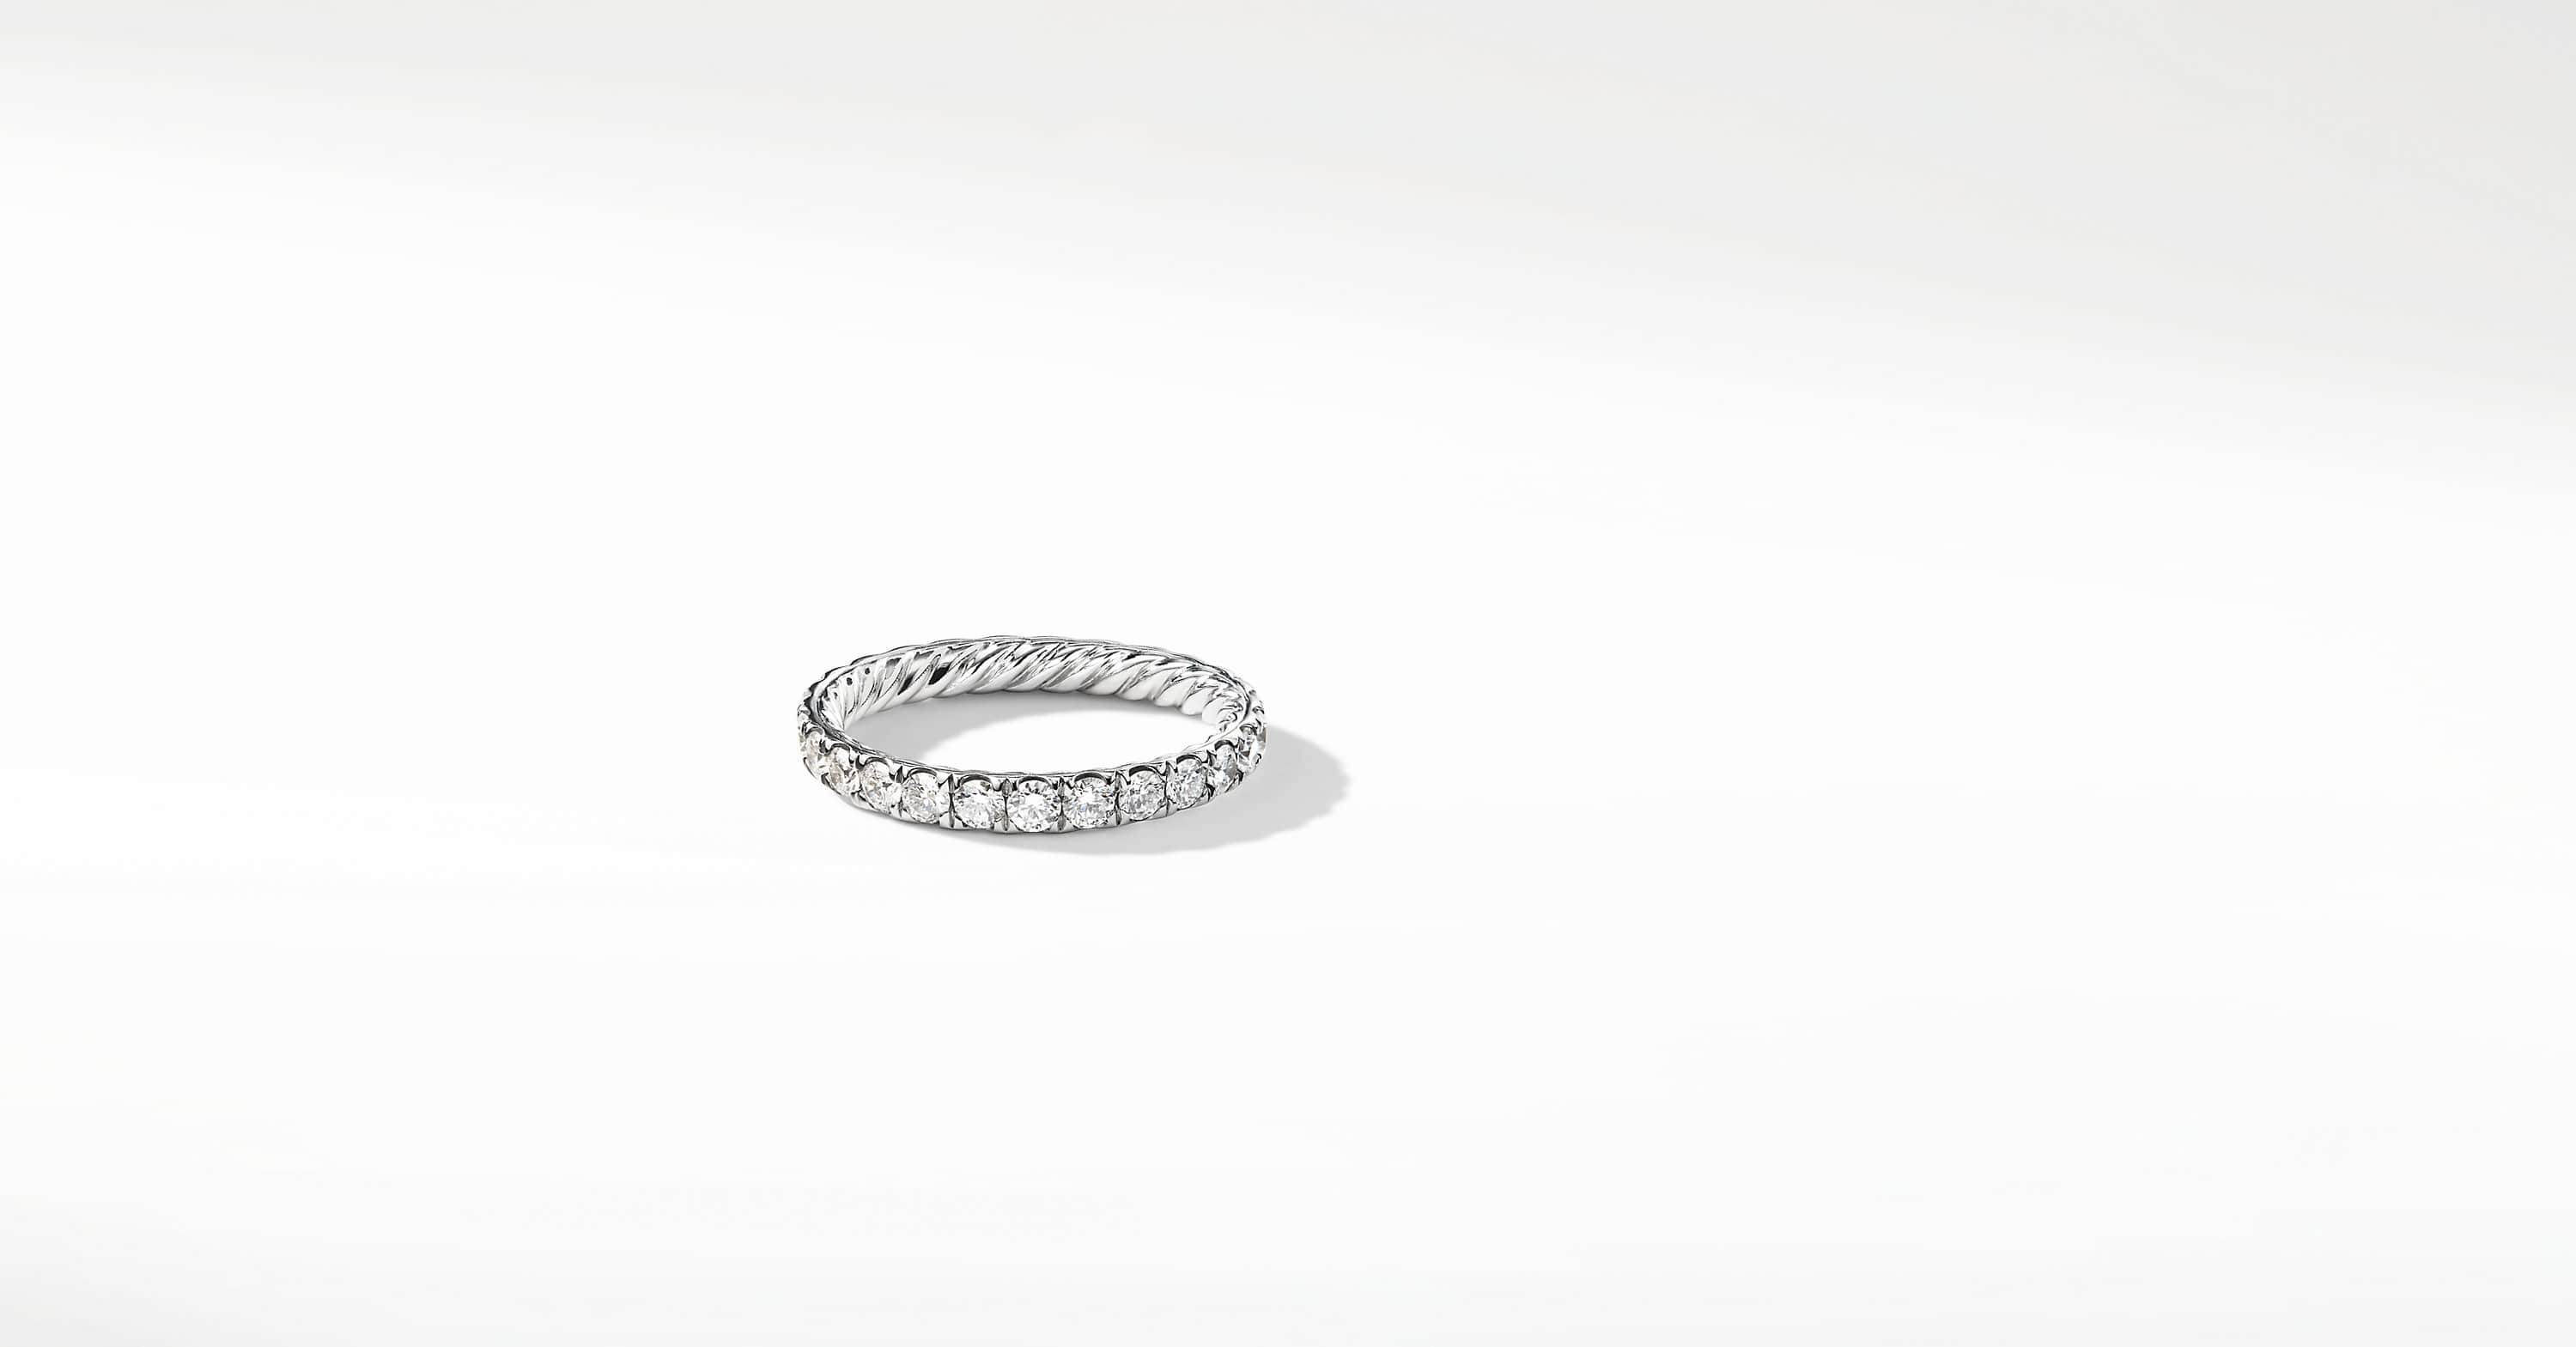 DY Eden Single Row Wedding Band with Diamonds in Platinum, 2.8mm